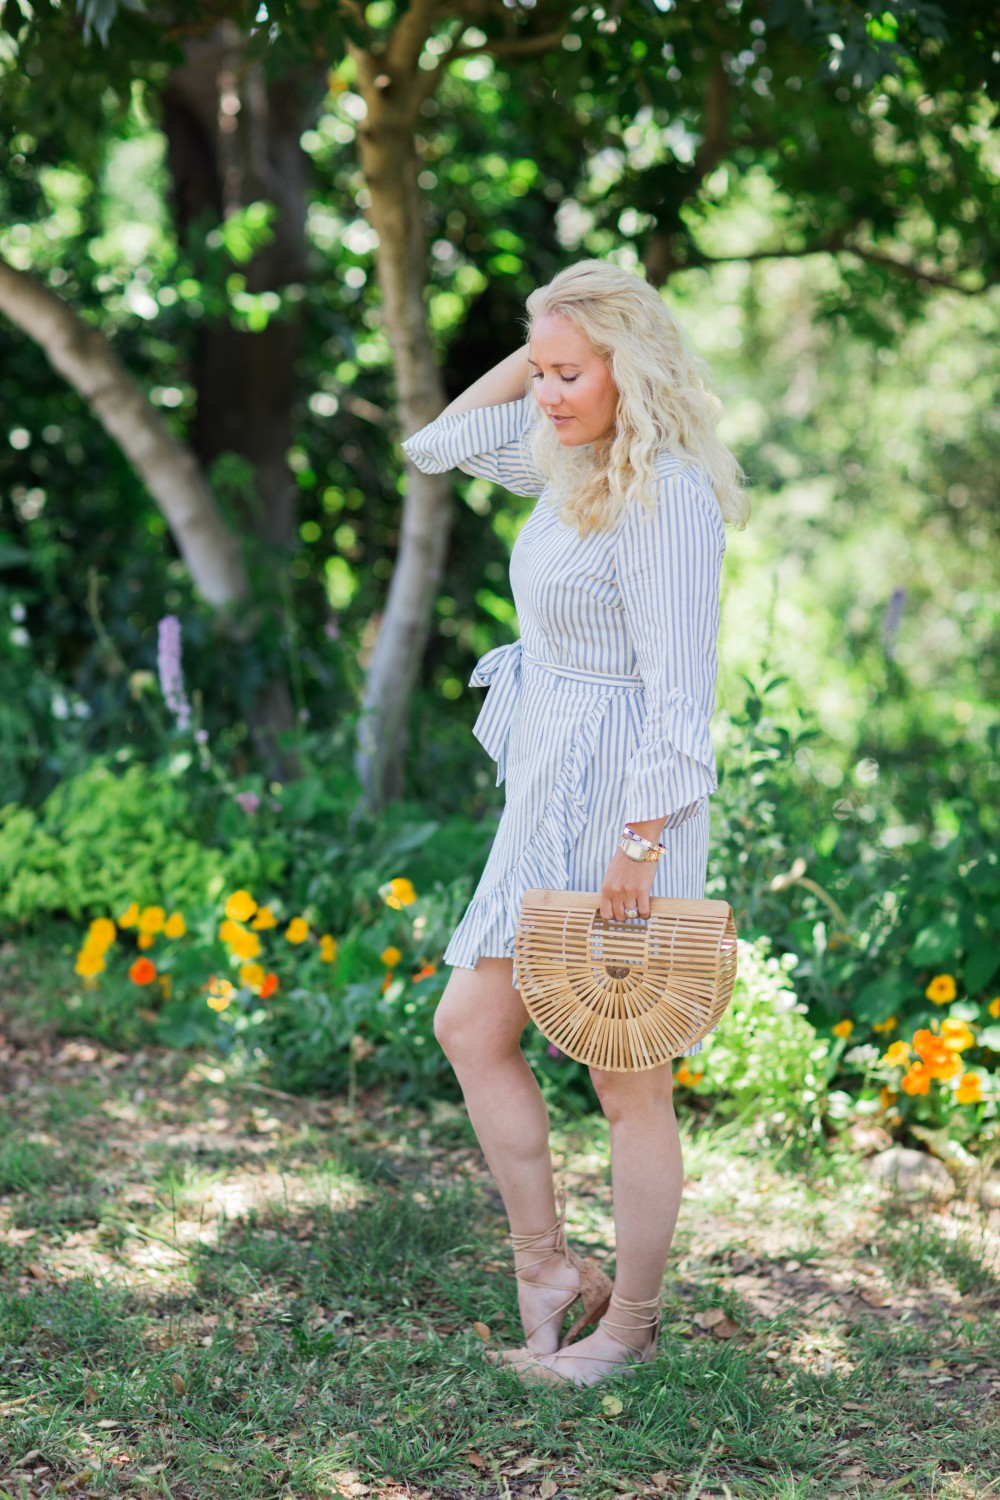 4th of July Picnic Outfit-Outfit Inspiration-Who What Wear for Target-Summer Style-Have Need Want-4th of July-July Fourth Outfit 7